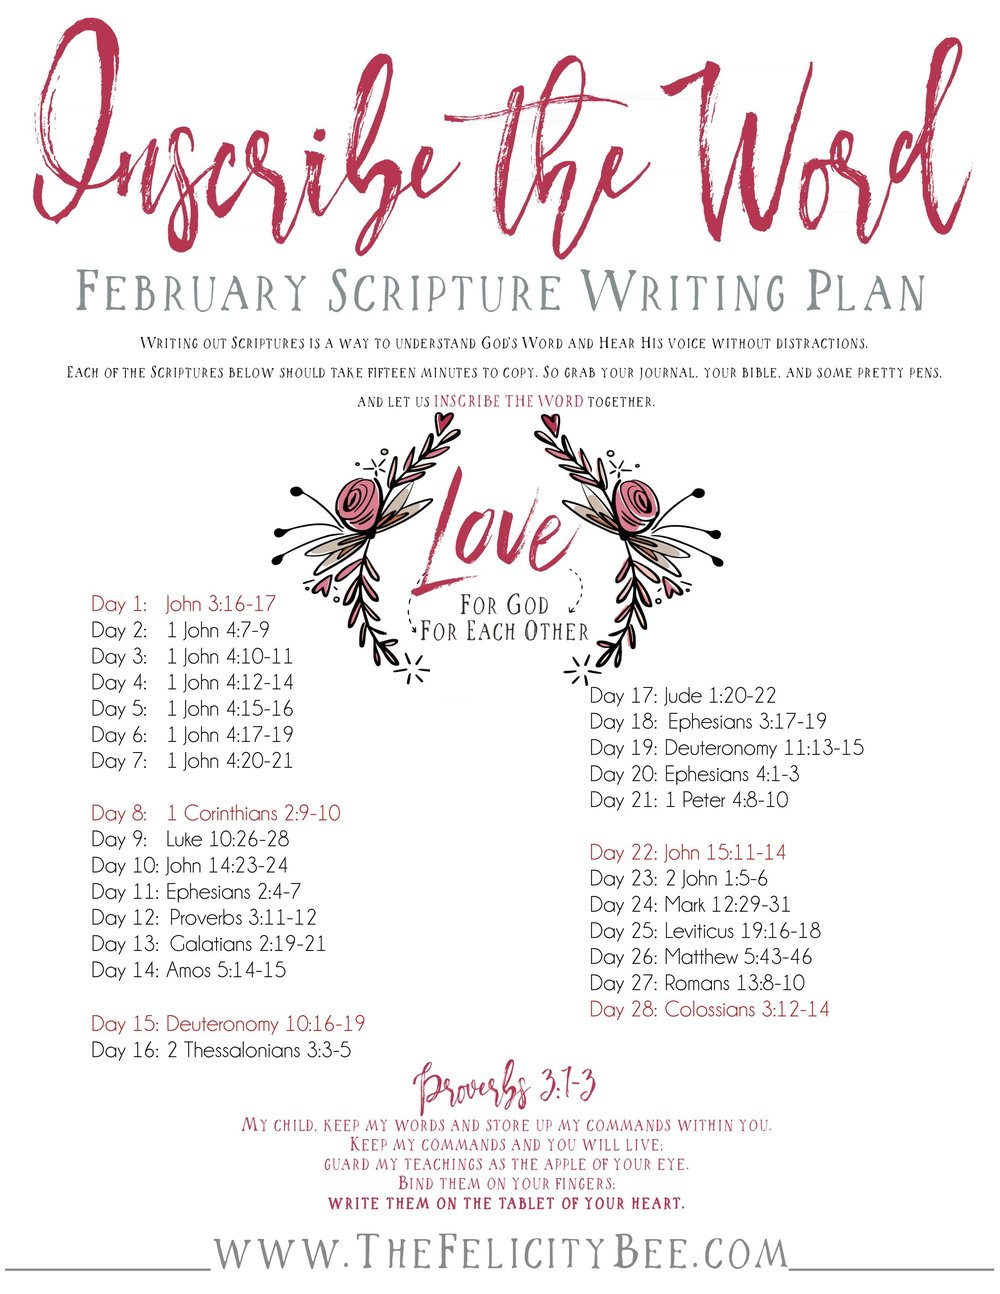 To download your February Scripture Writing Plan,  CLICK HERE.